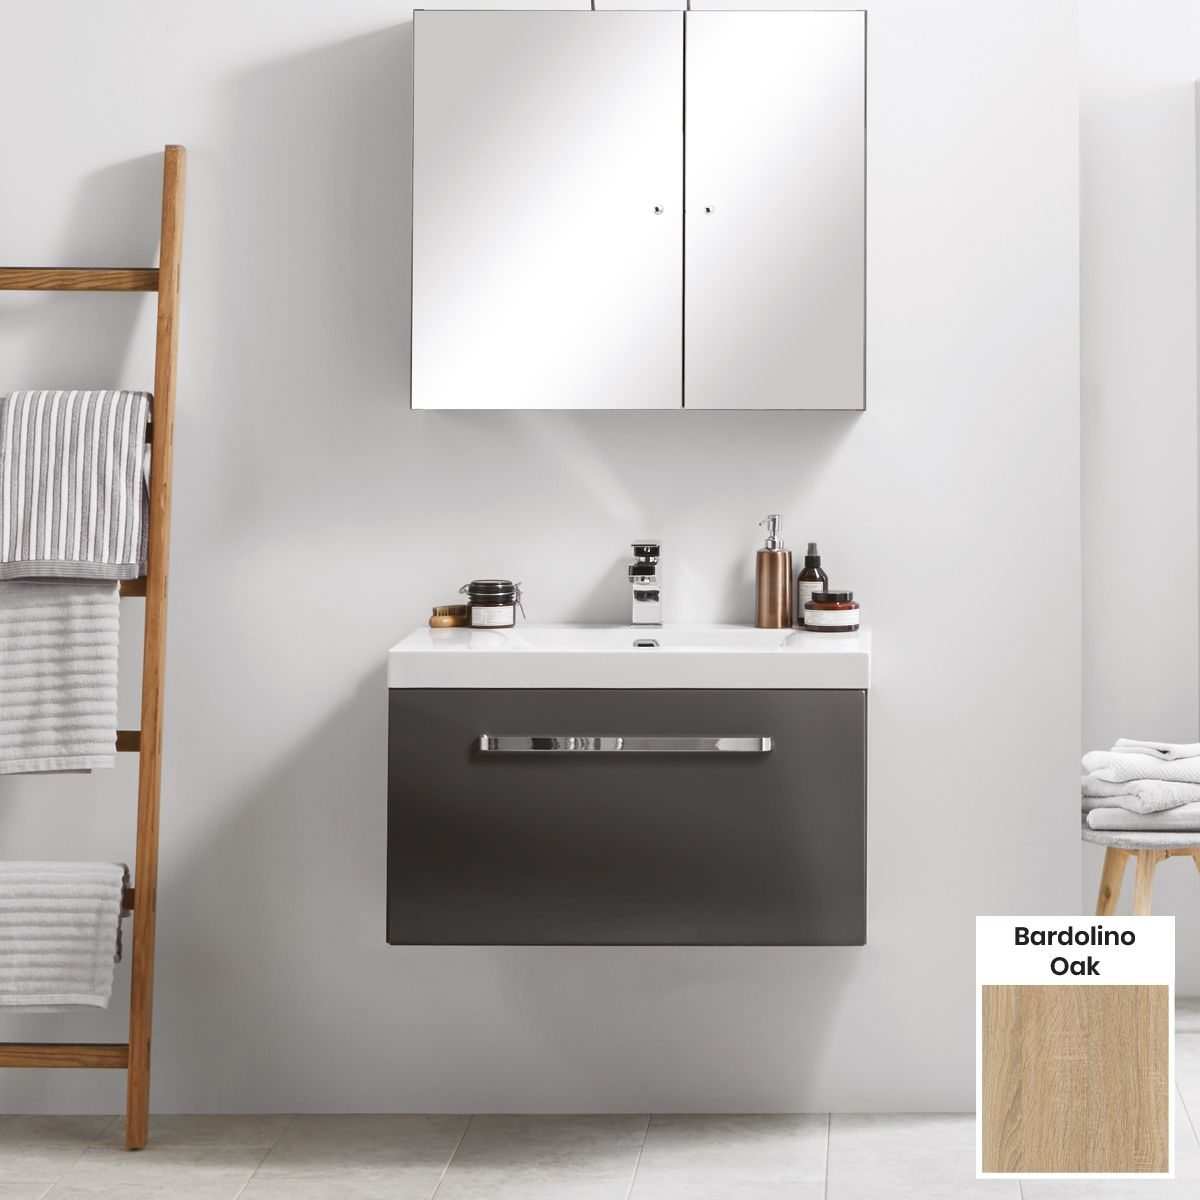 Elation Eko Bardolino Oak Vanity Unit with Slab Drawer 750mm